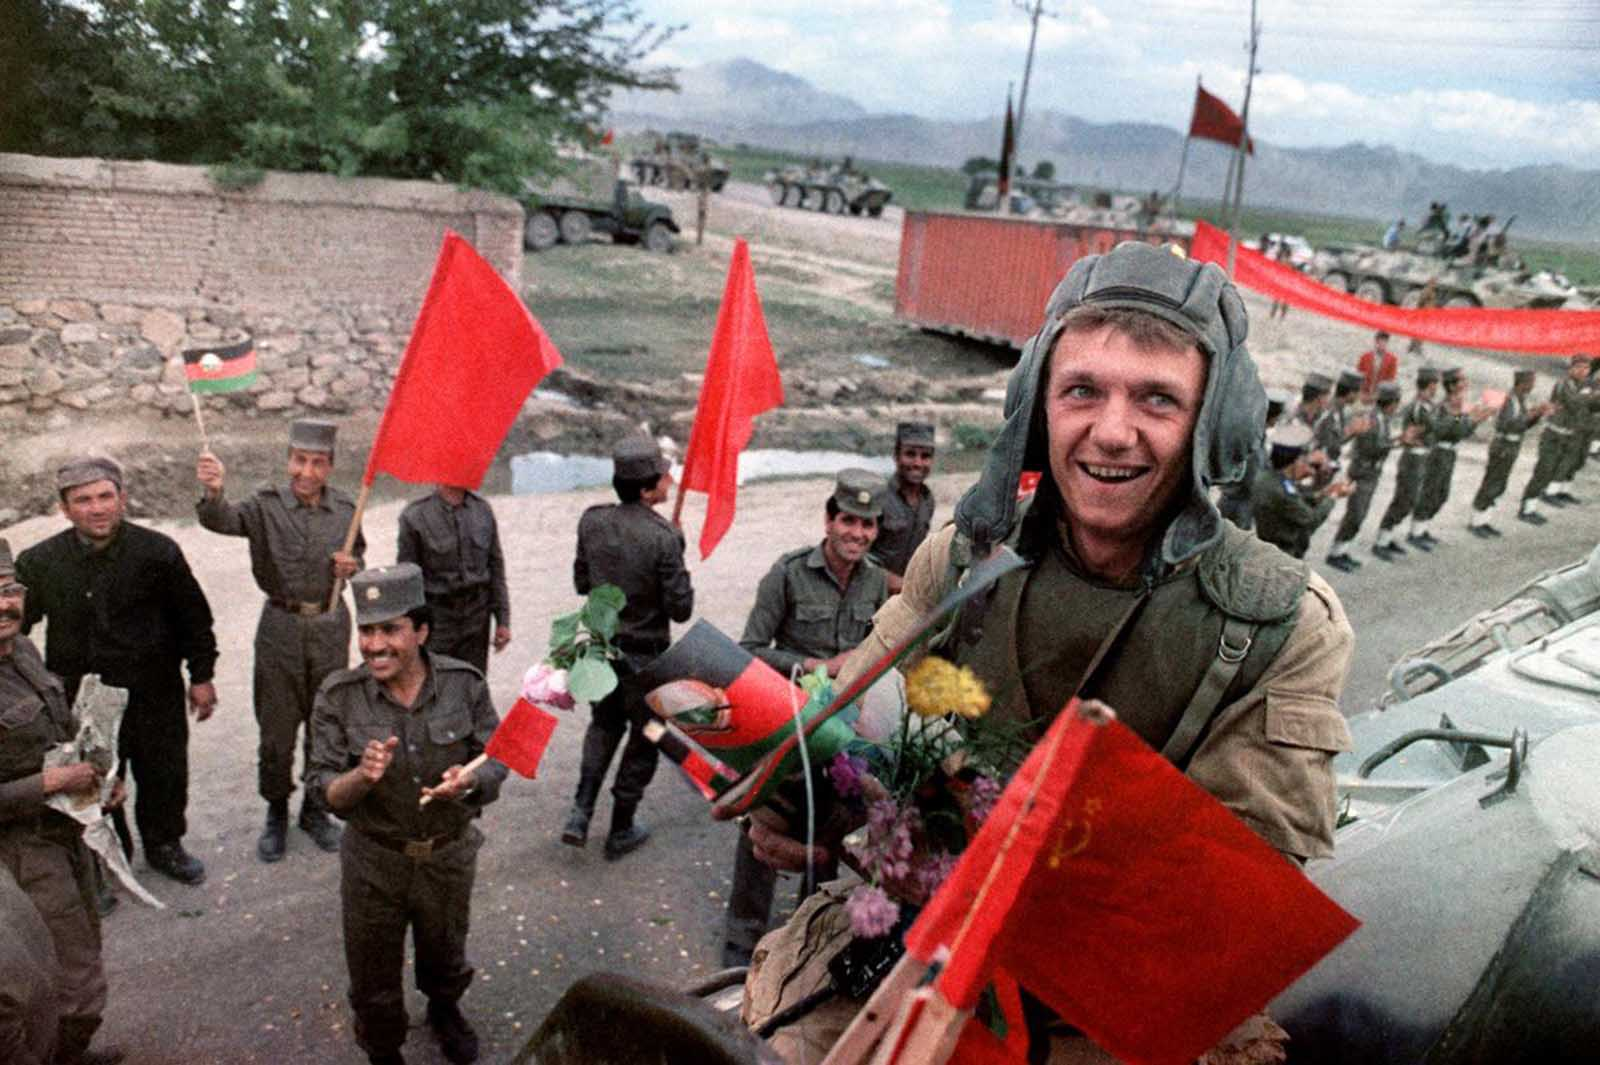 A Red Army soldier atop of his armored personal vehicle smiles as Soviet Army troops stop in Kabul prior to their withdrawal from Afghanistan, on May 16, 1988.